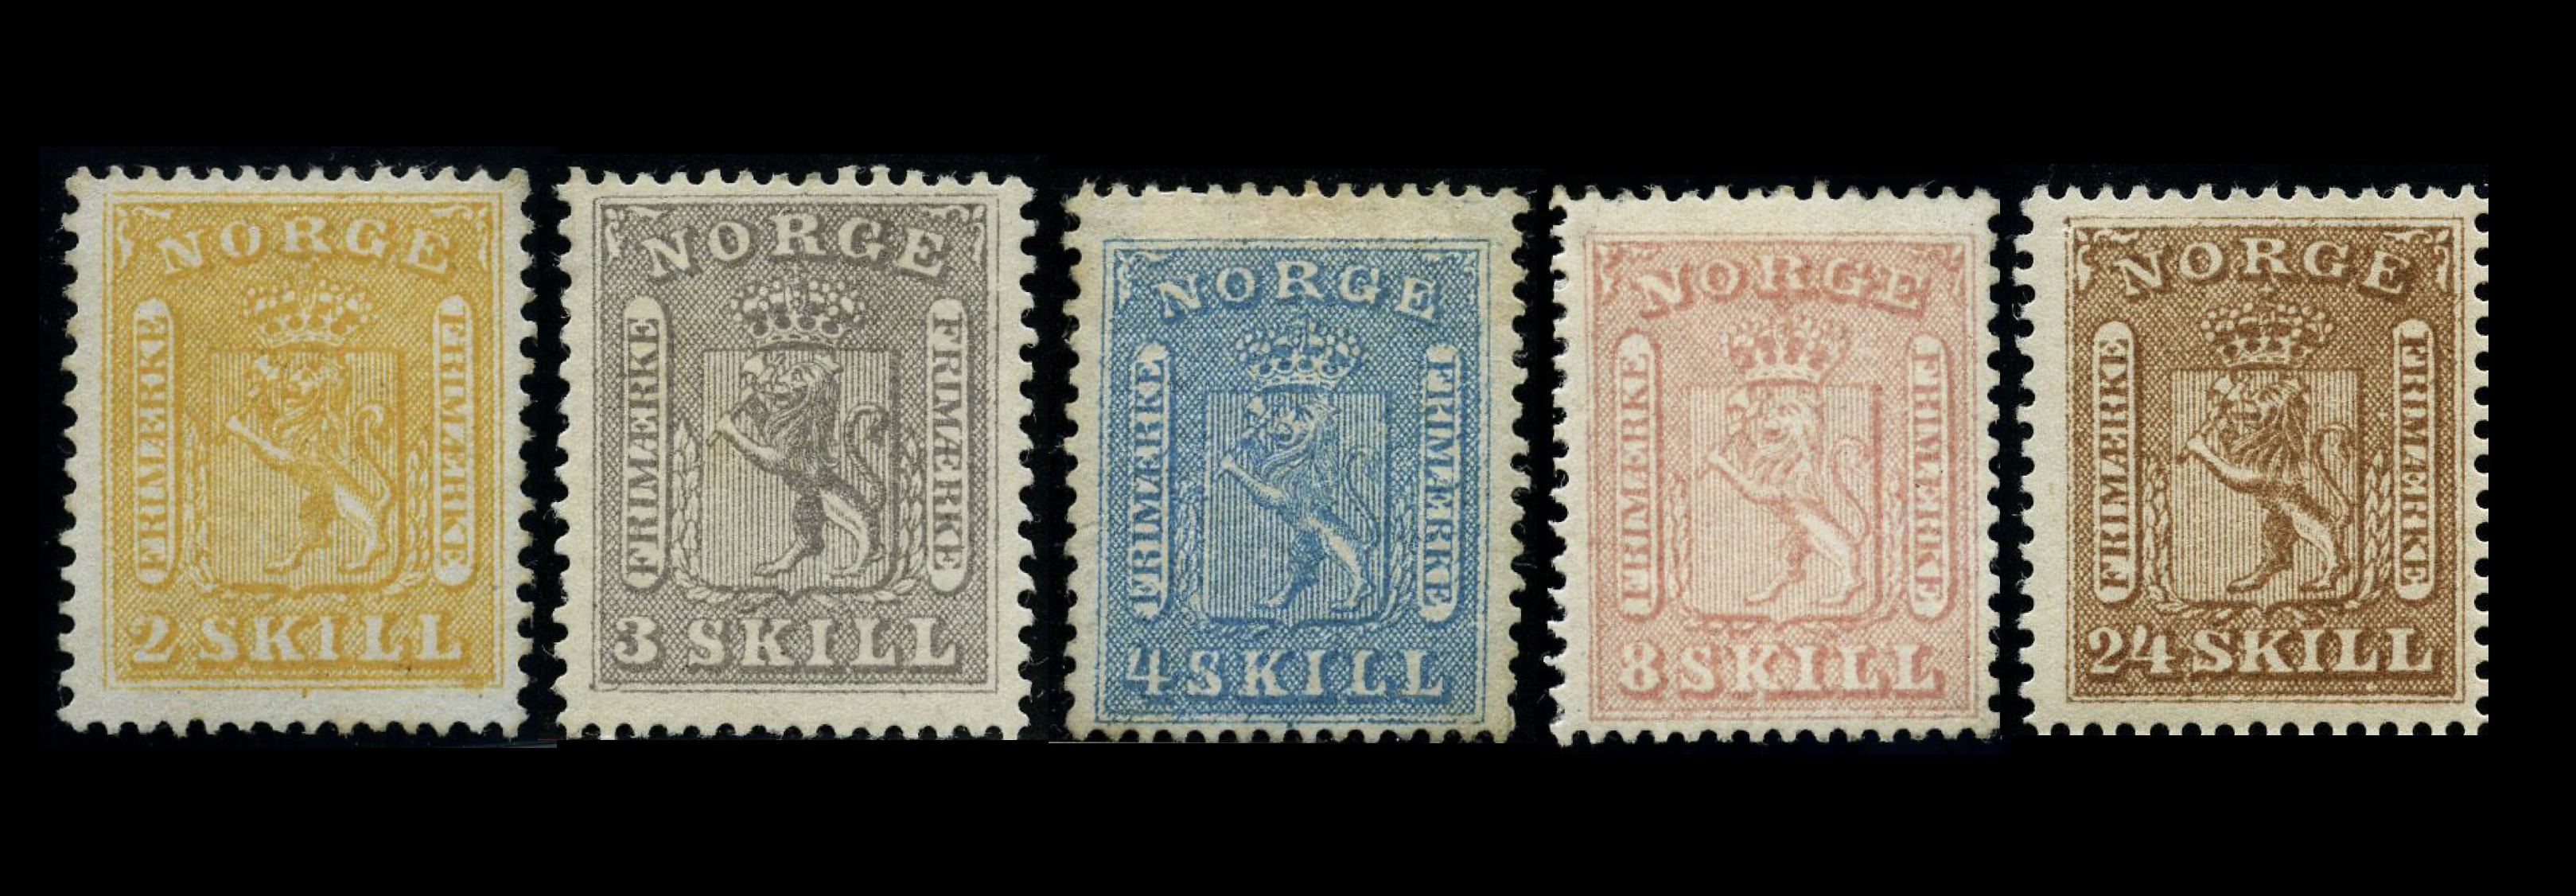 Norway 1863 -1866 Coat of Arms